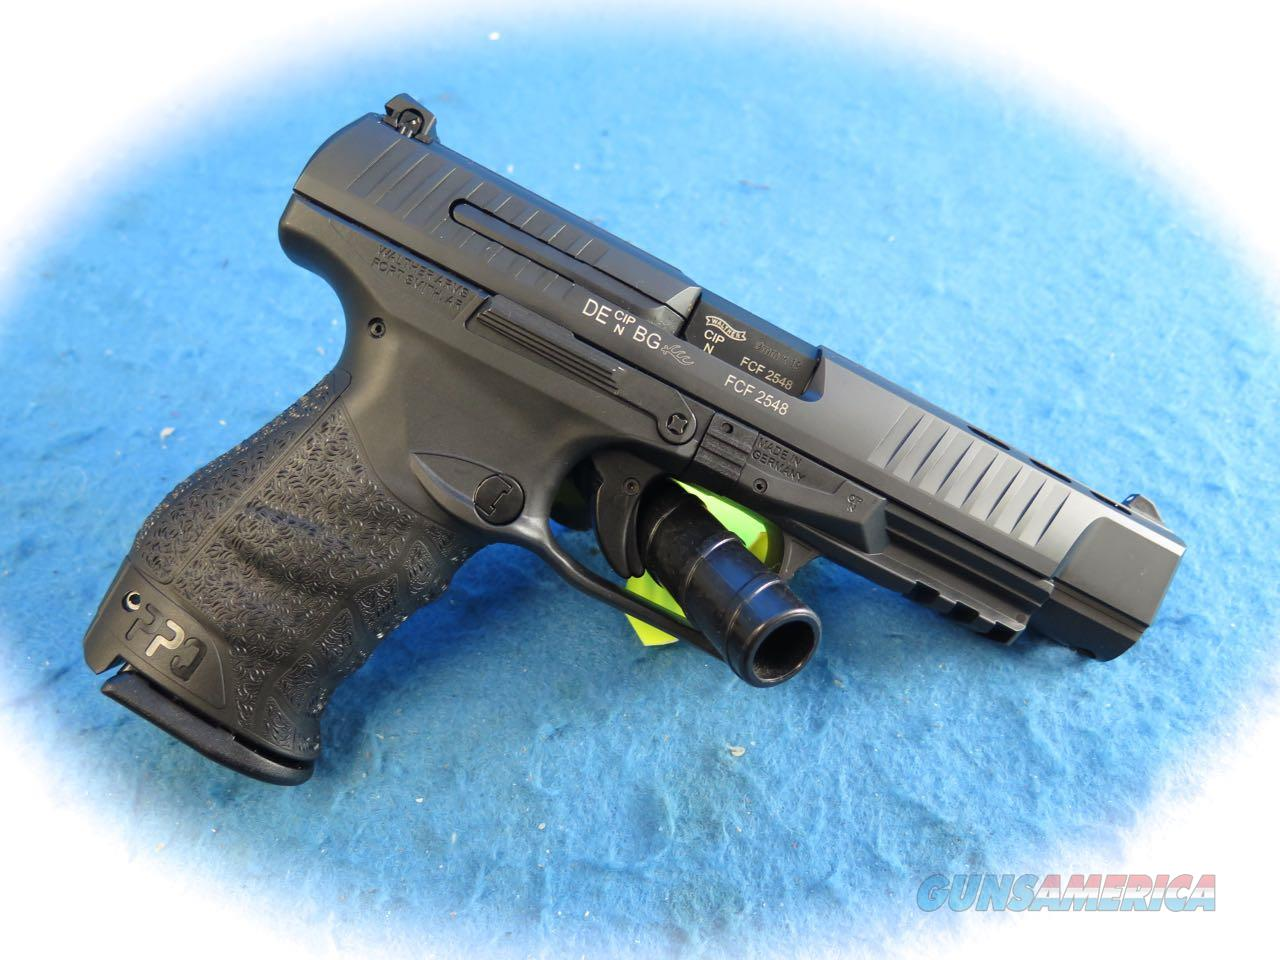 Walther PPQ M2 9mm Semi Auto Pistol Model 2796091 **New**  Guns > Pistols > Walther Pistols > Post WWII > P99/PPQ